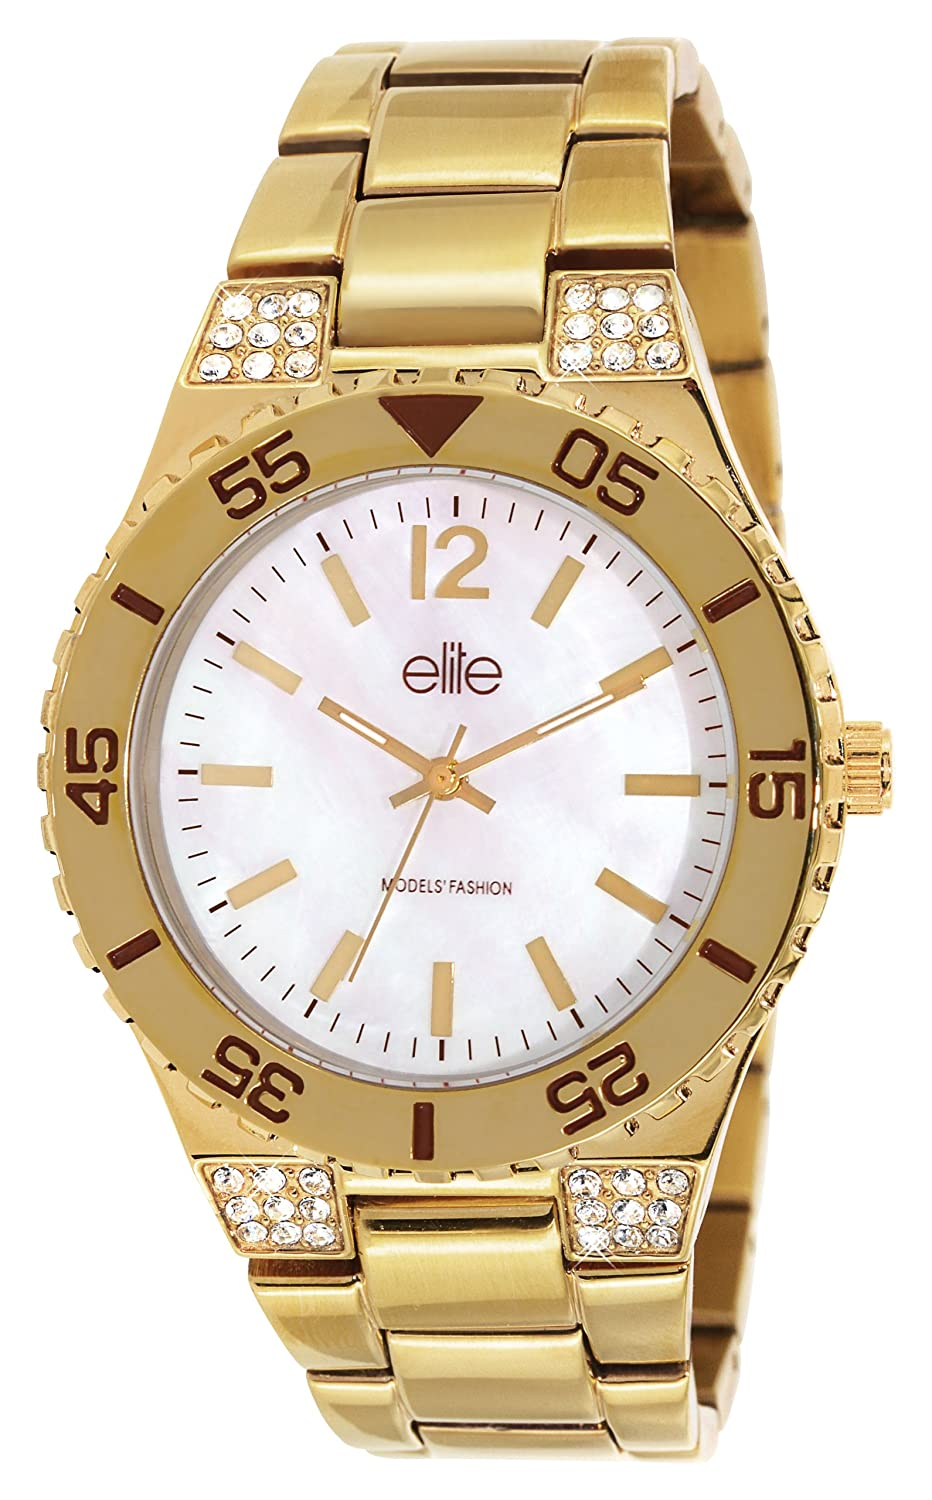 Elite Models 'Fashion – e53244g-101 Damen-Armbanduhr 045J699 Analog weiß Armband Stahl Gold